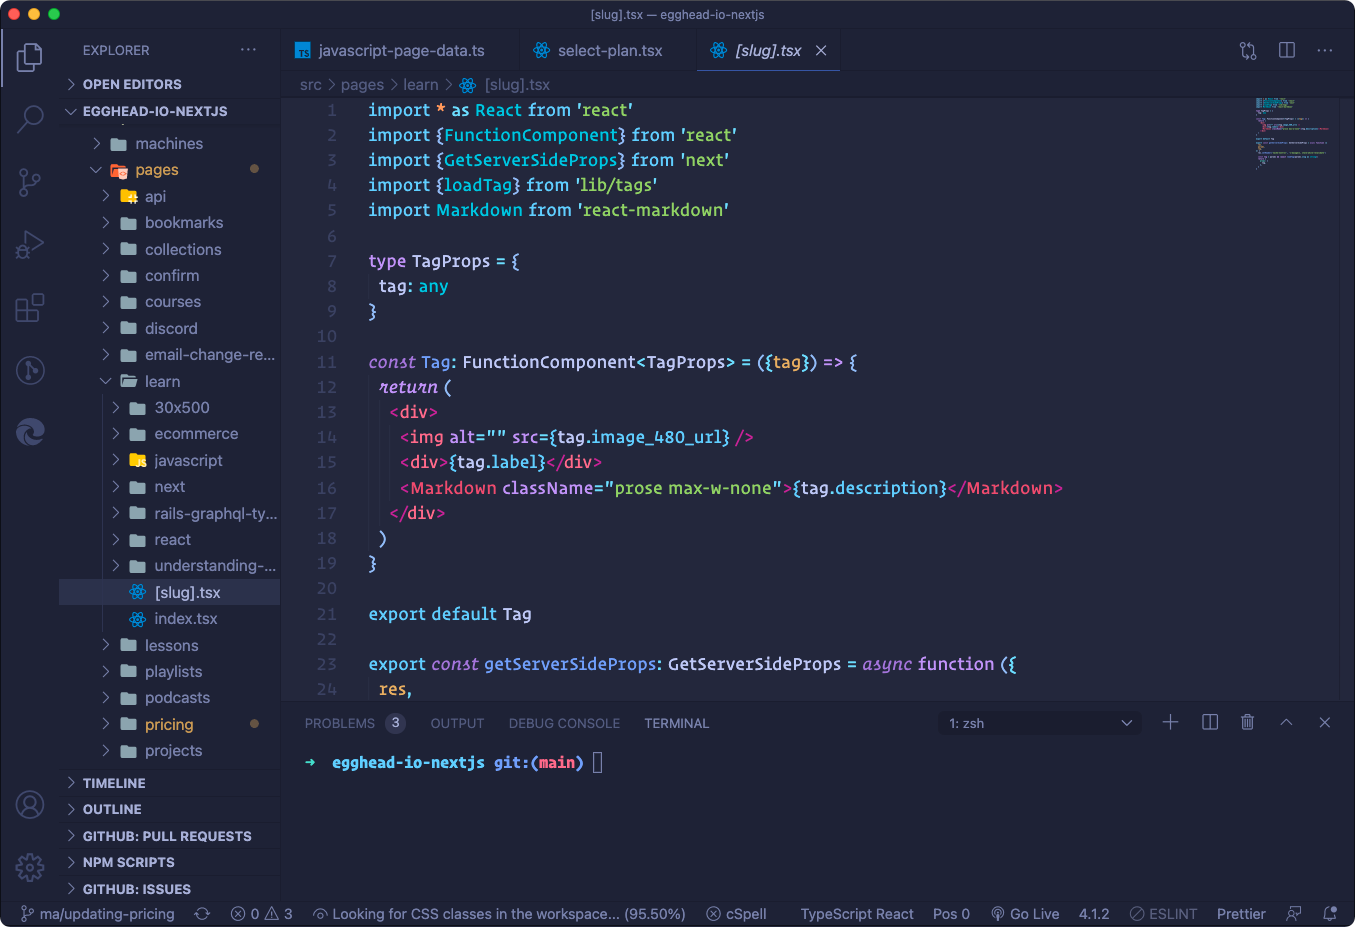 The interface of VS Code – one of the most popular environments for professional programming